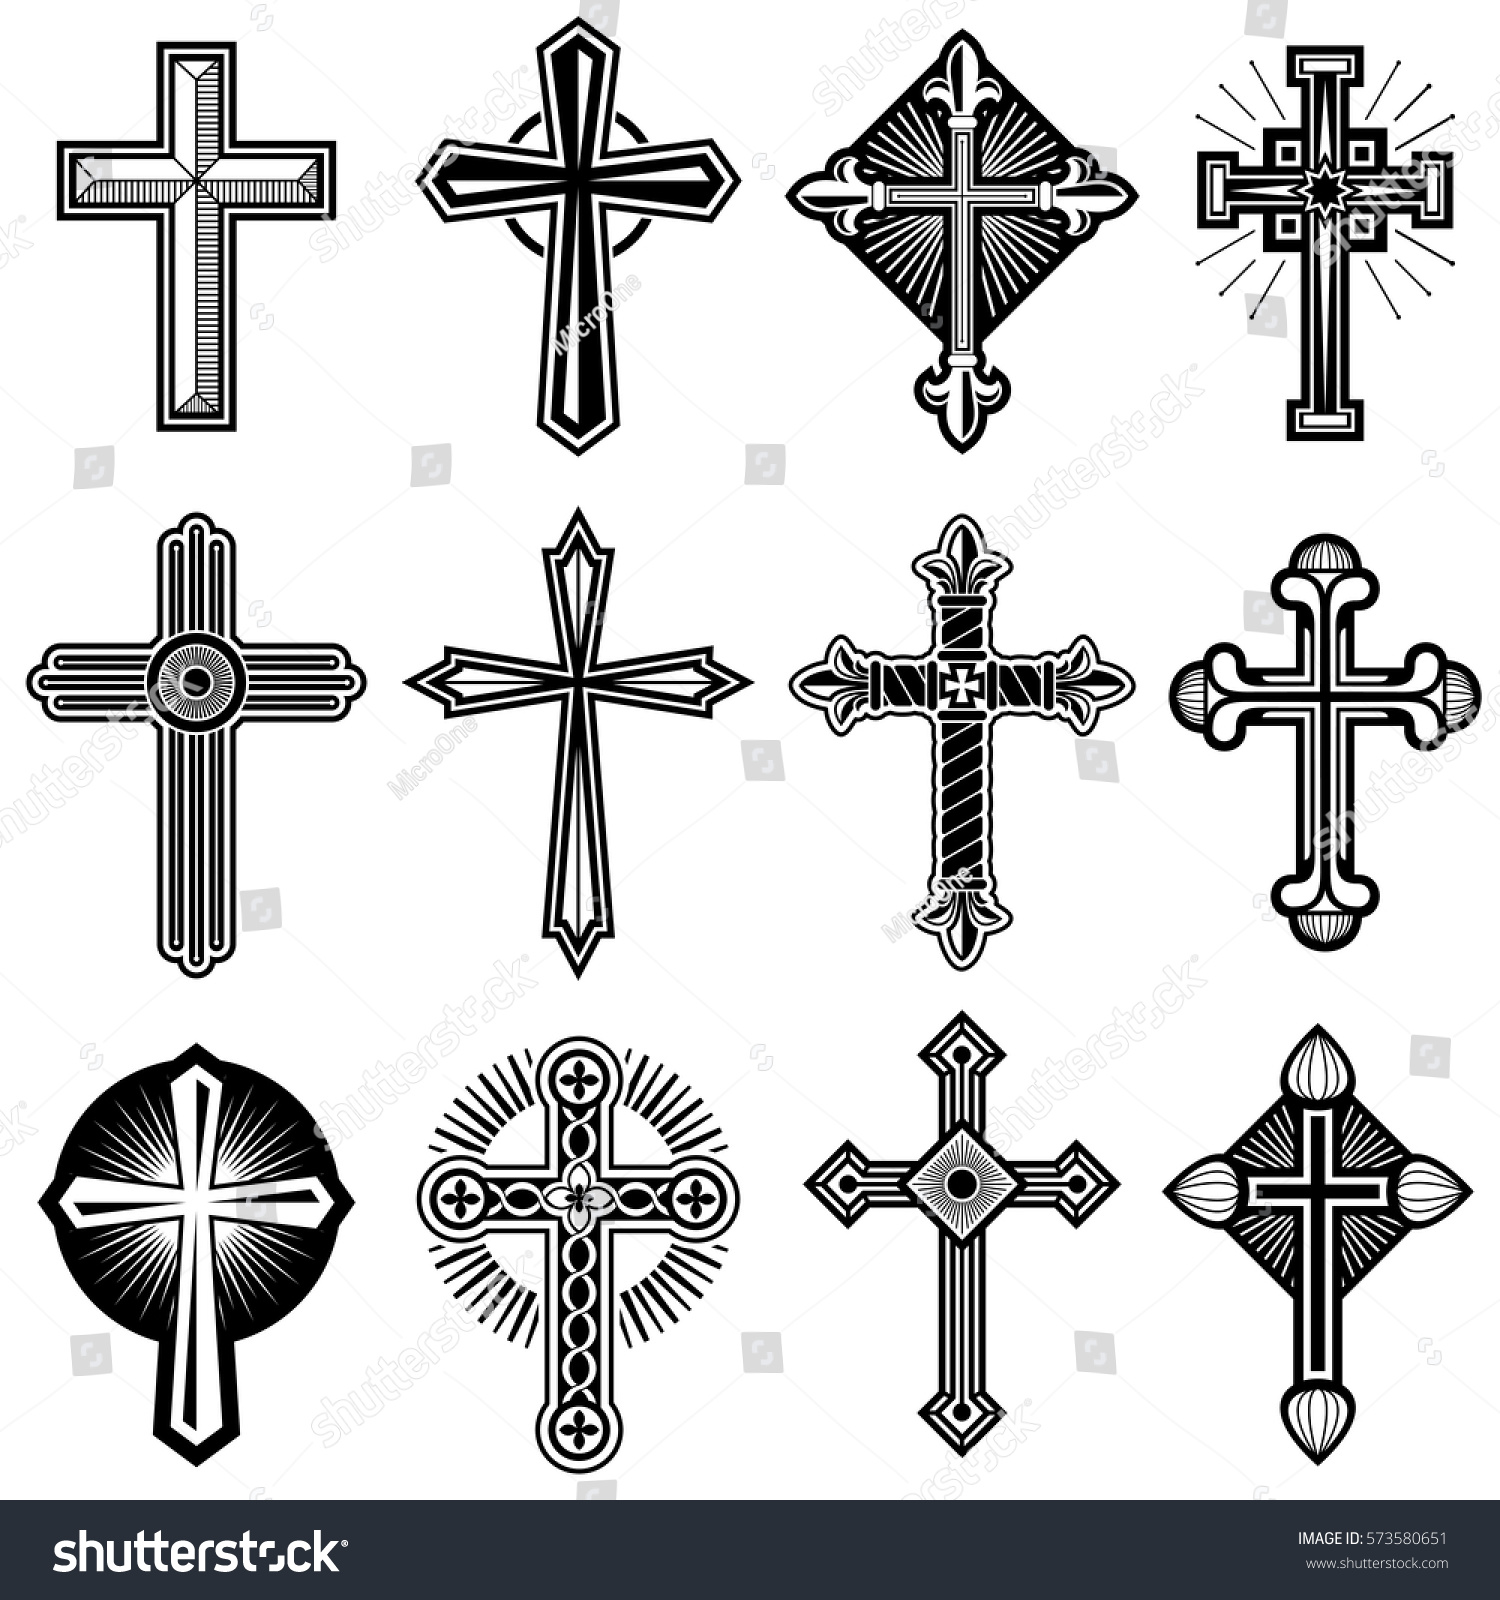 Catholic Christian Cross Ornament Vector Icons Stock Vector Royalty